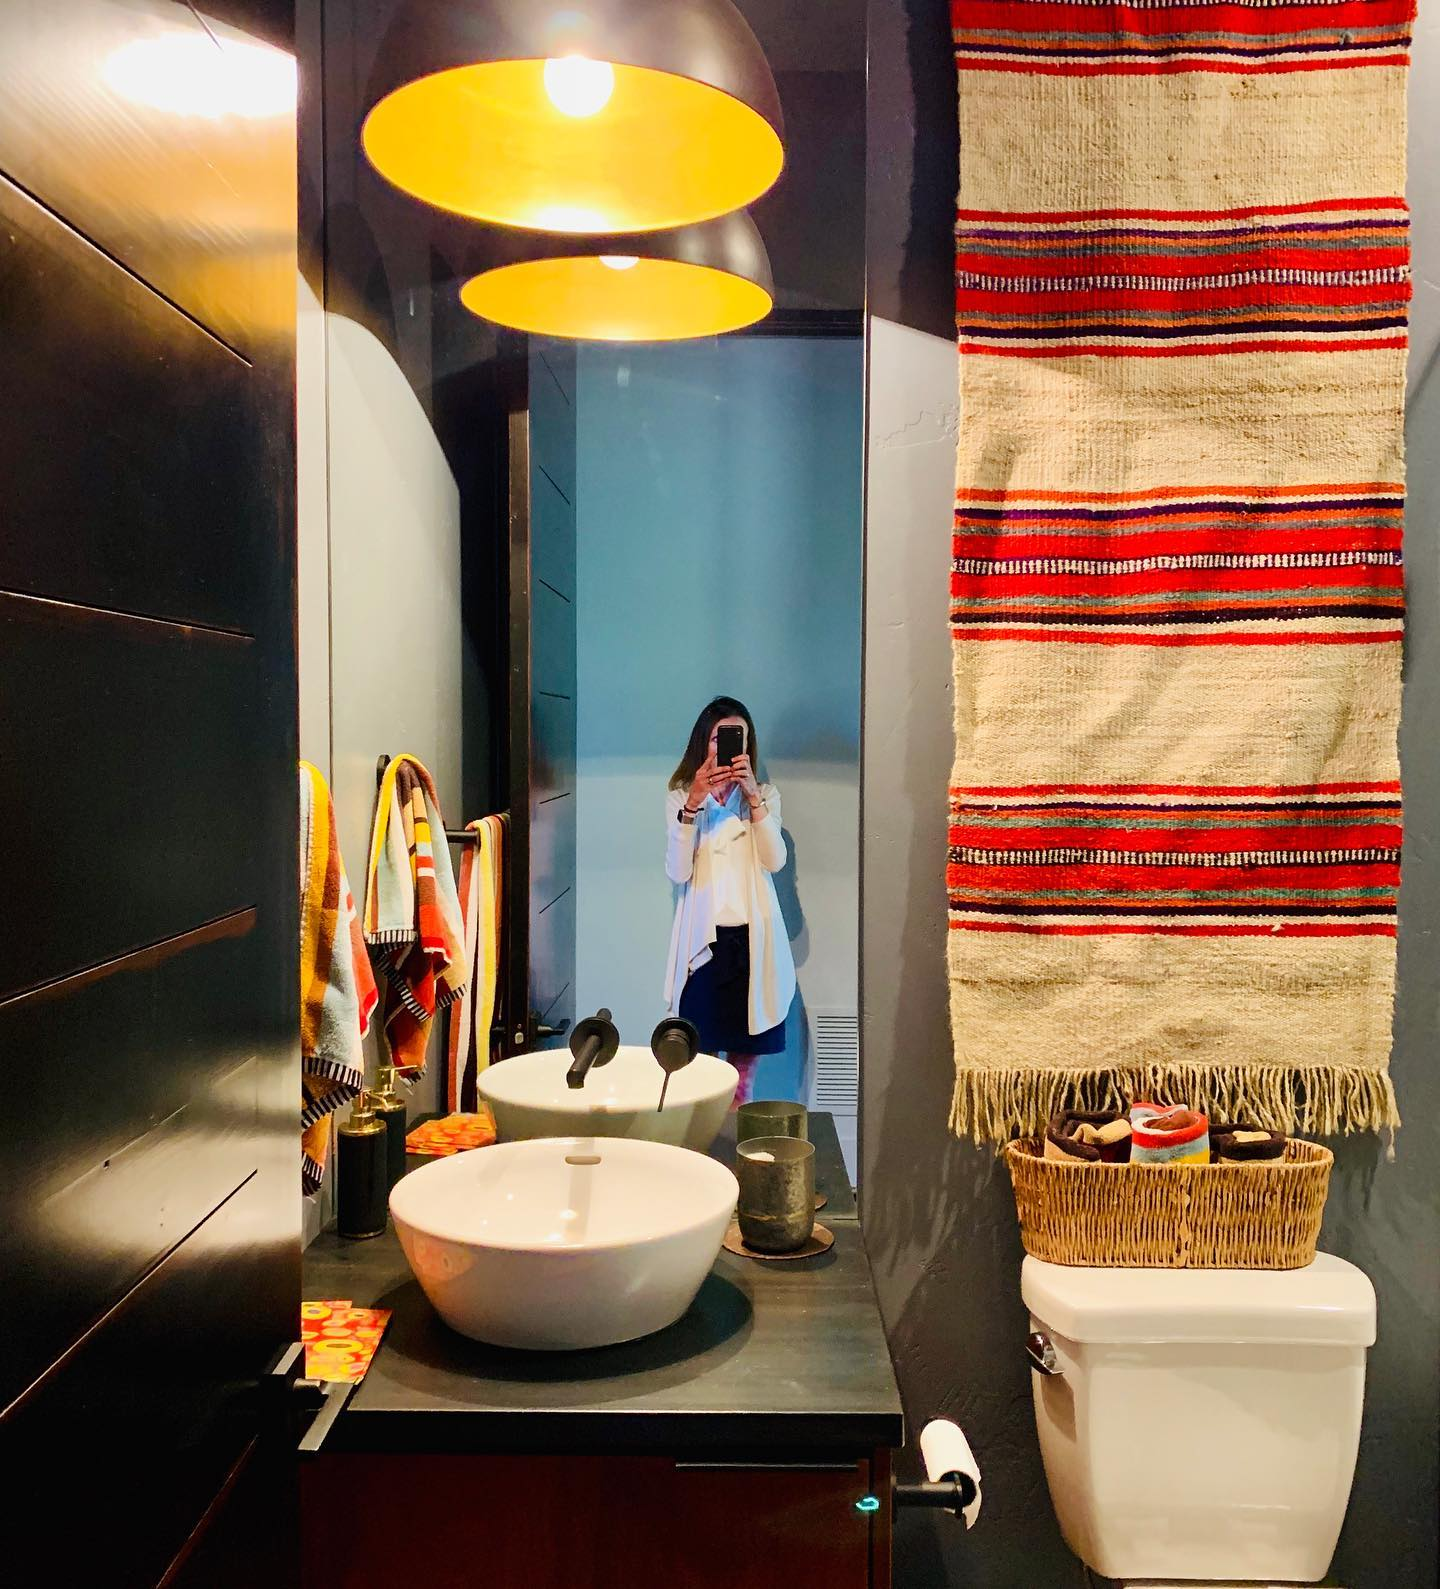 Who says a bathroom shouldn't be too bold?! @cmtfabrication whitefish custom home builder